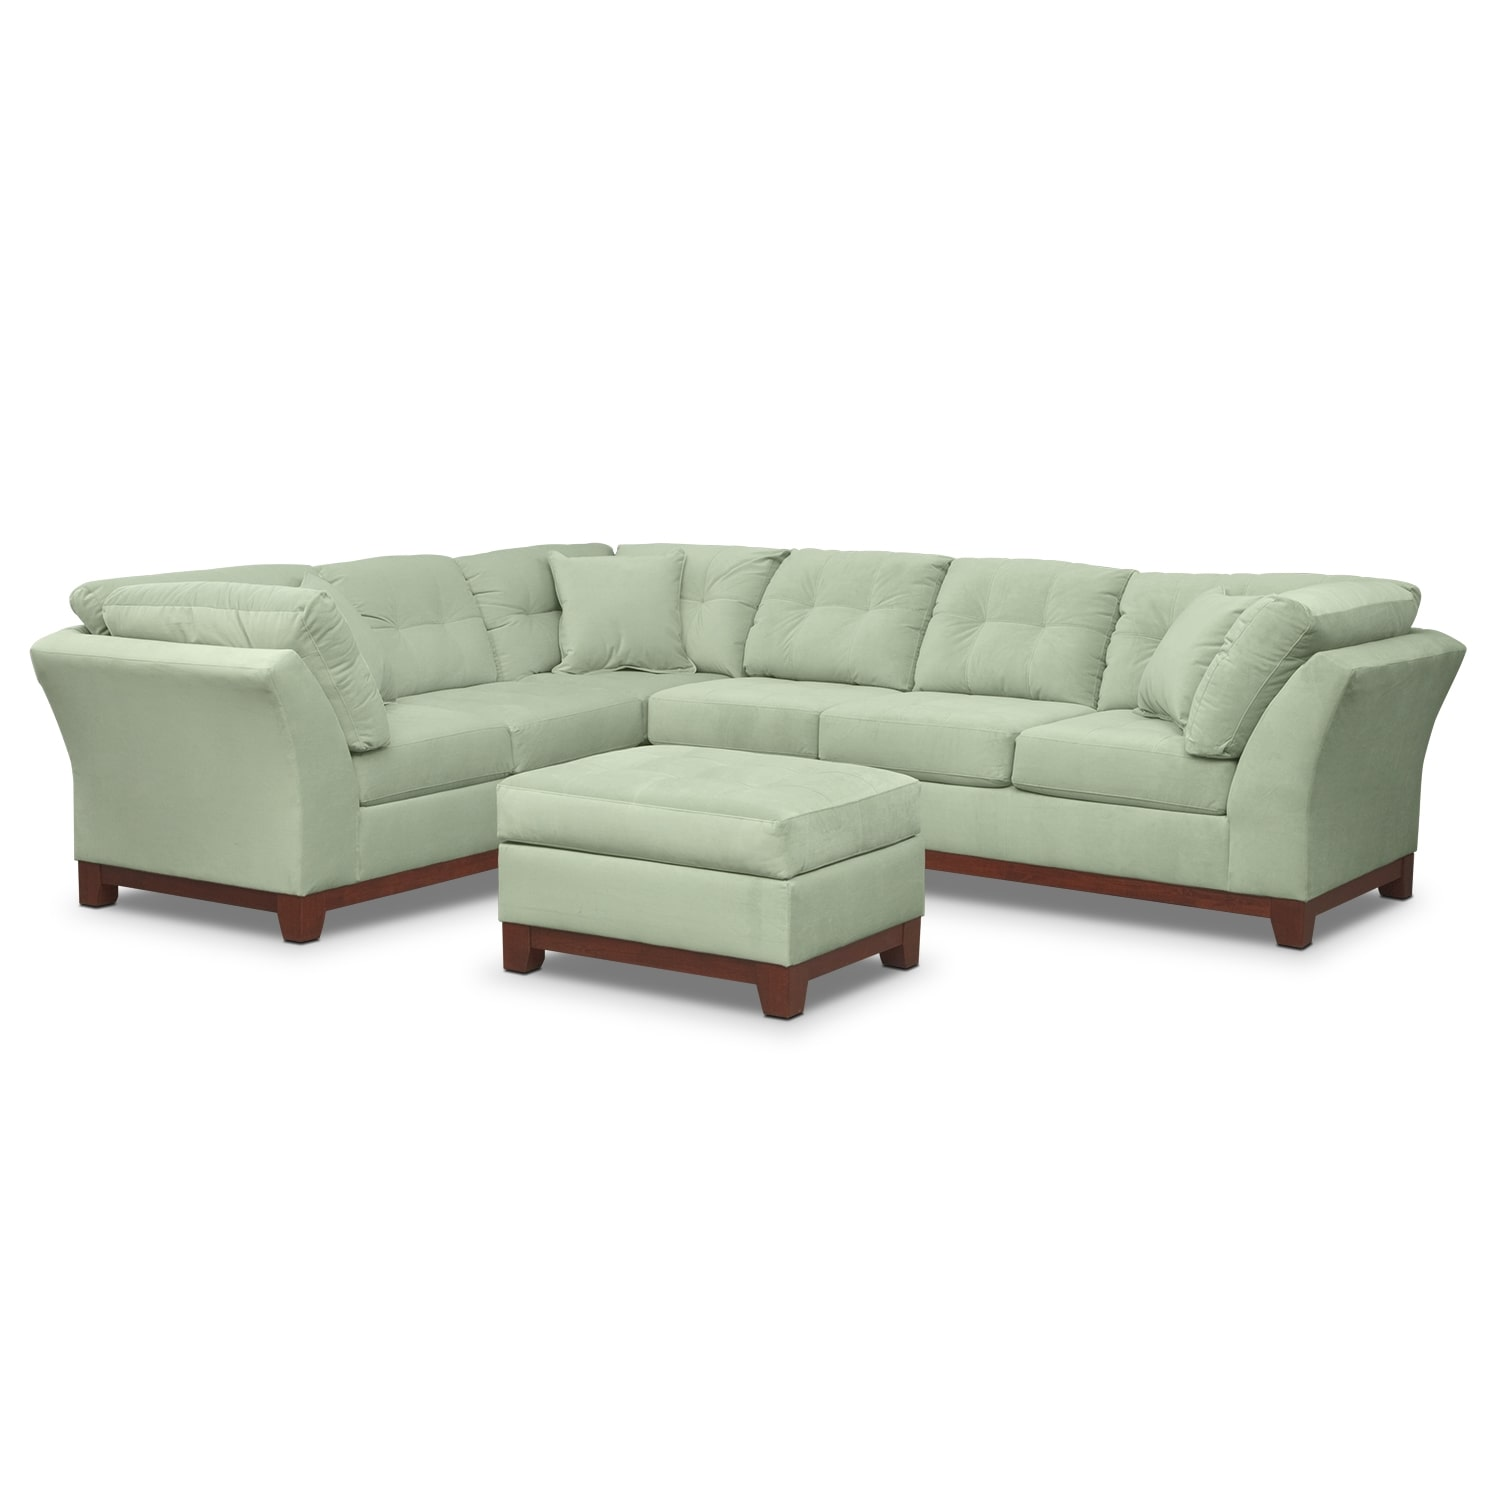 Solace Spa II 2 Pc. Sectional and Ottoman